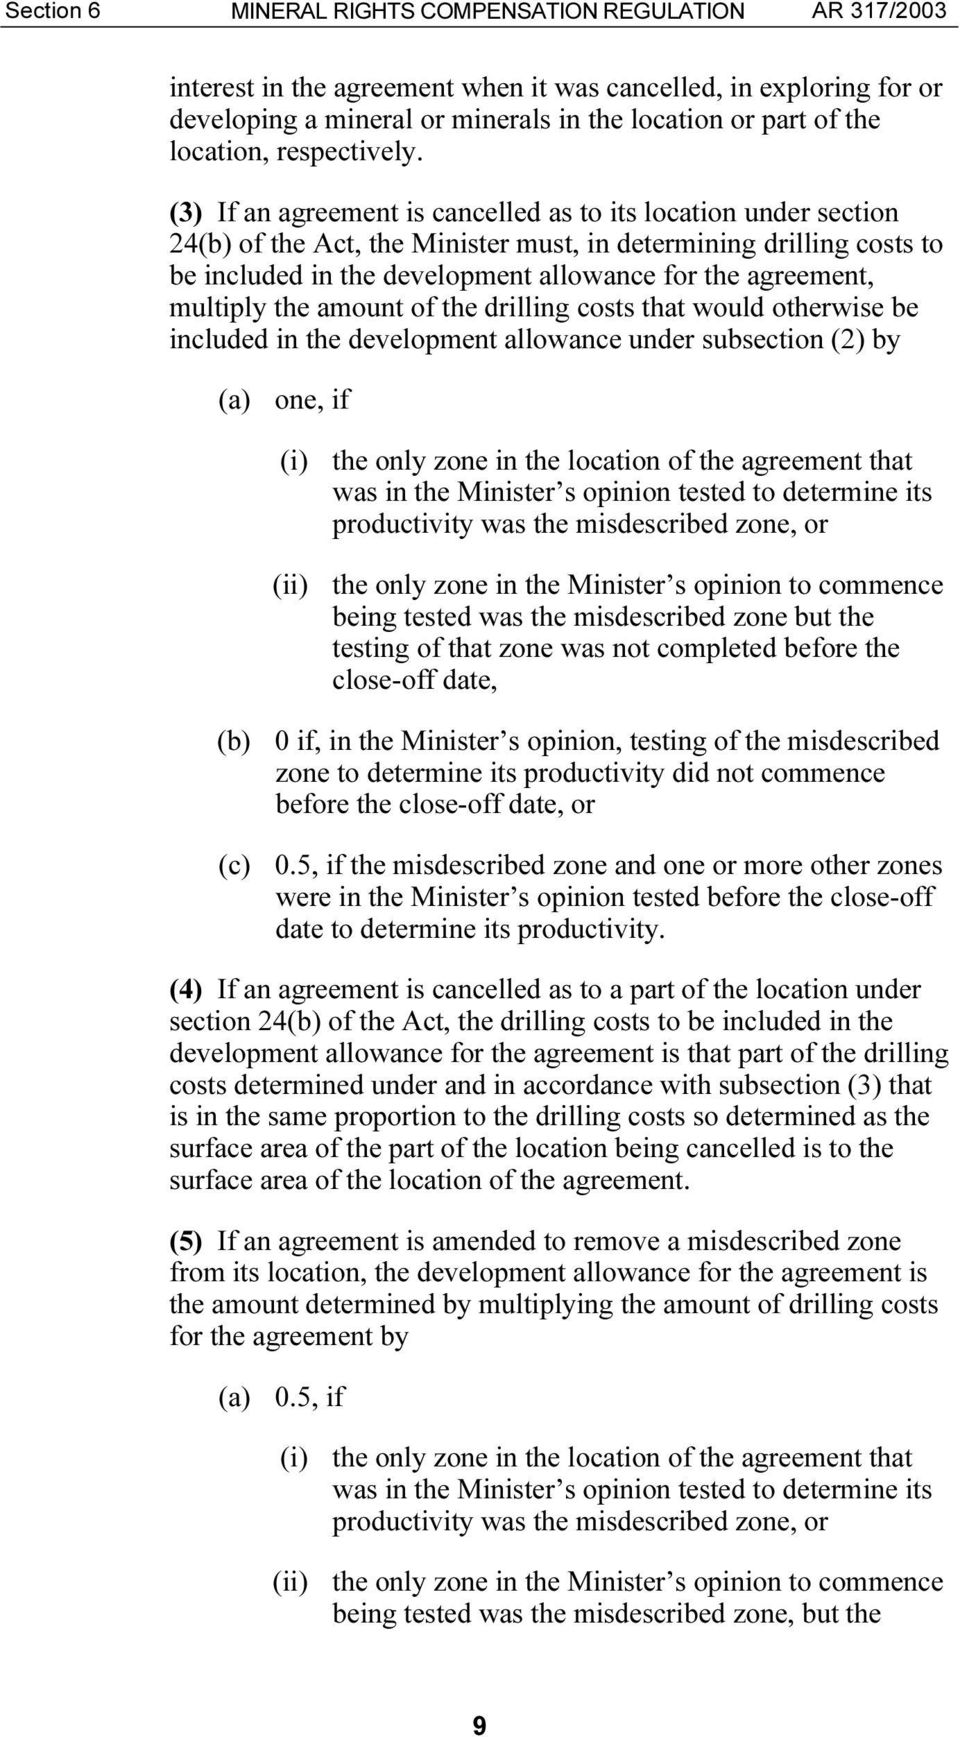 (3) If an agreement is cancelled as to its location under section 24(b) of the Act, the Minister must, in determining drilling costs to be included in the development allowance for the agreement,